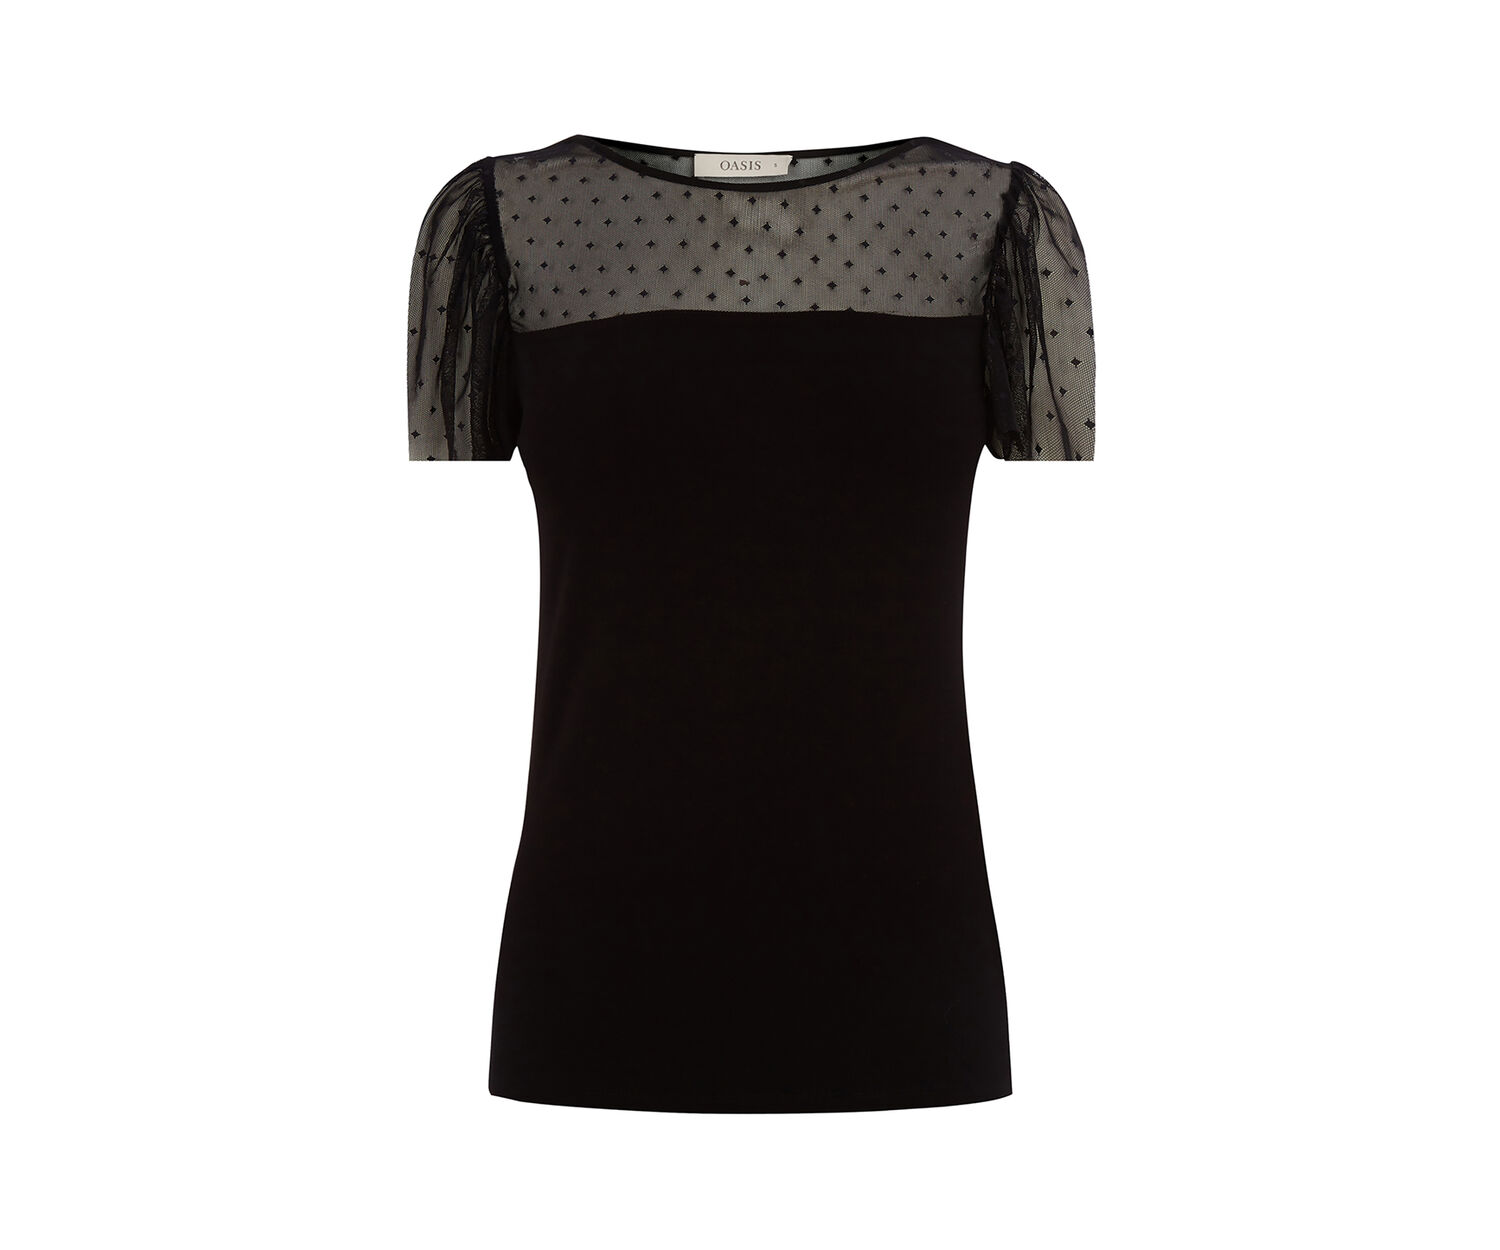 Oasis, ruffle mesh fittted top Black 0